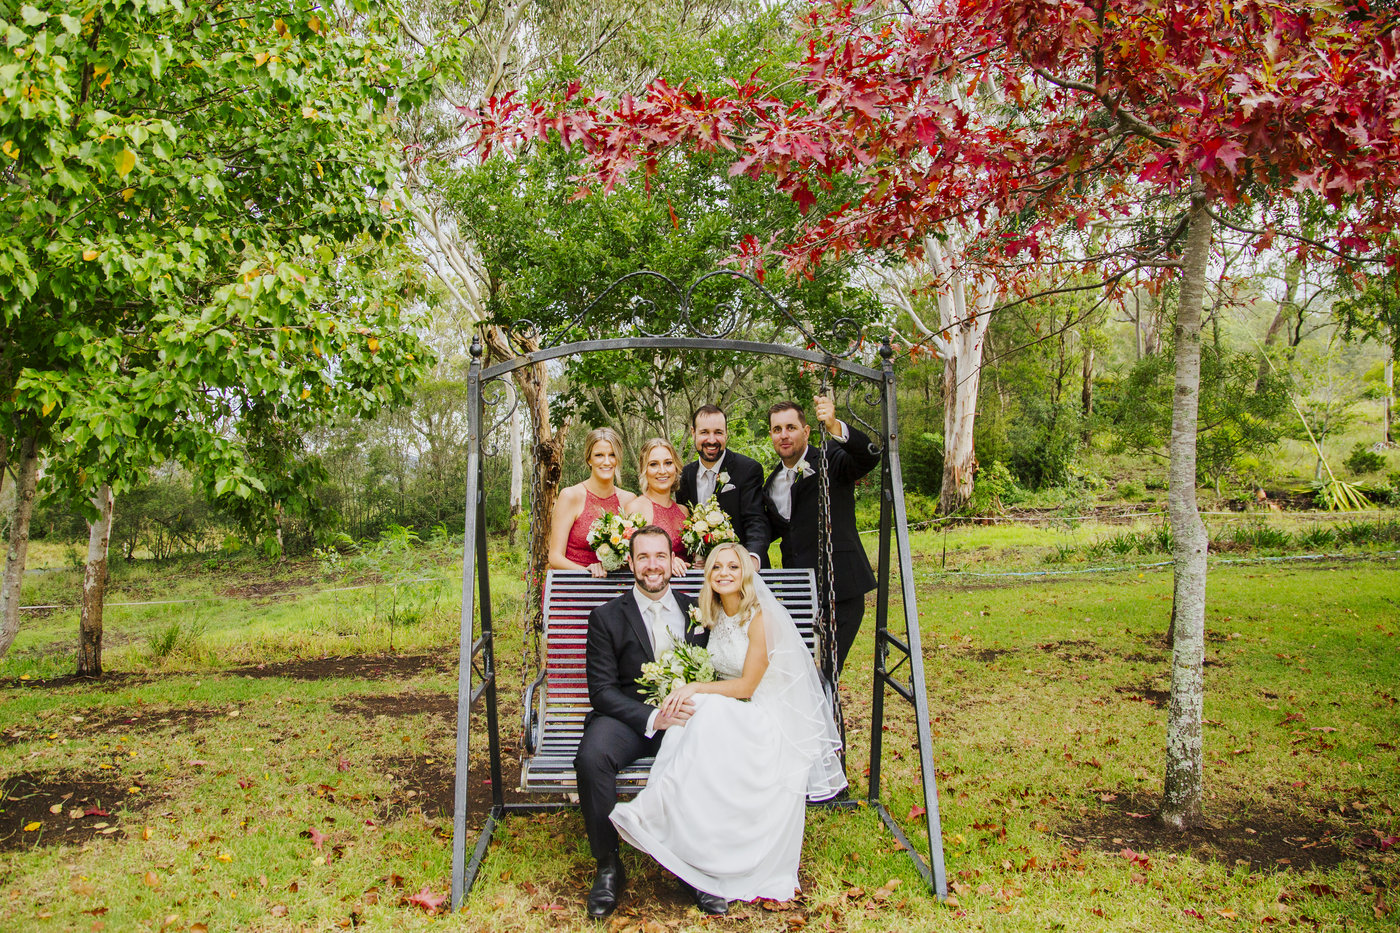 Wedding Photography couple on swing with bridal party